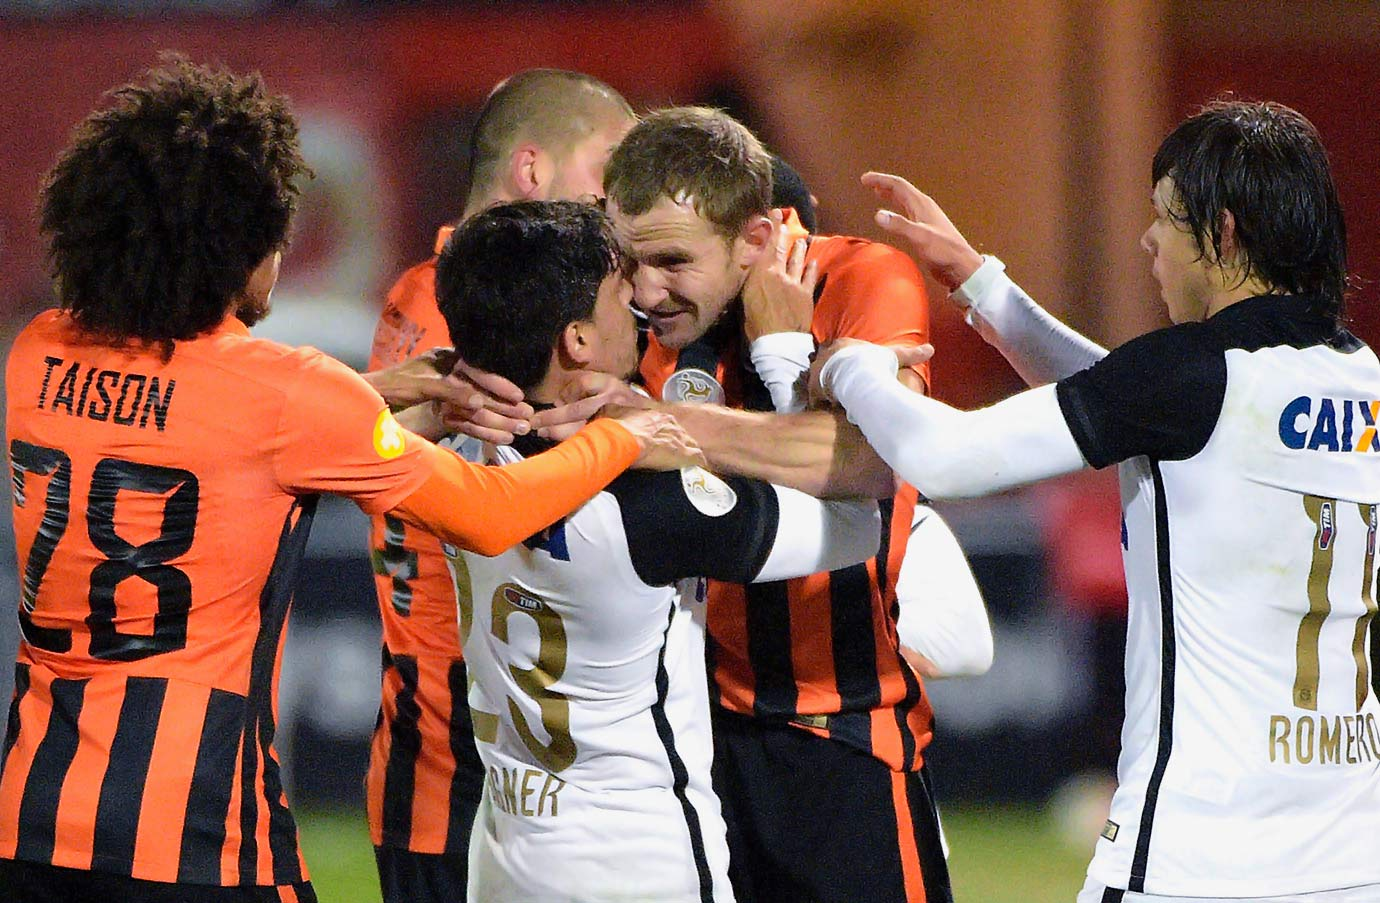 Corinthians' Fagner and Shakhtar's Olexandr Kucher were literally at each others throats during the Florida Cup soccer match in Kissimmee, Fla.